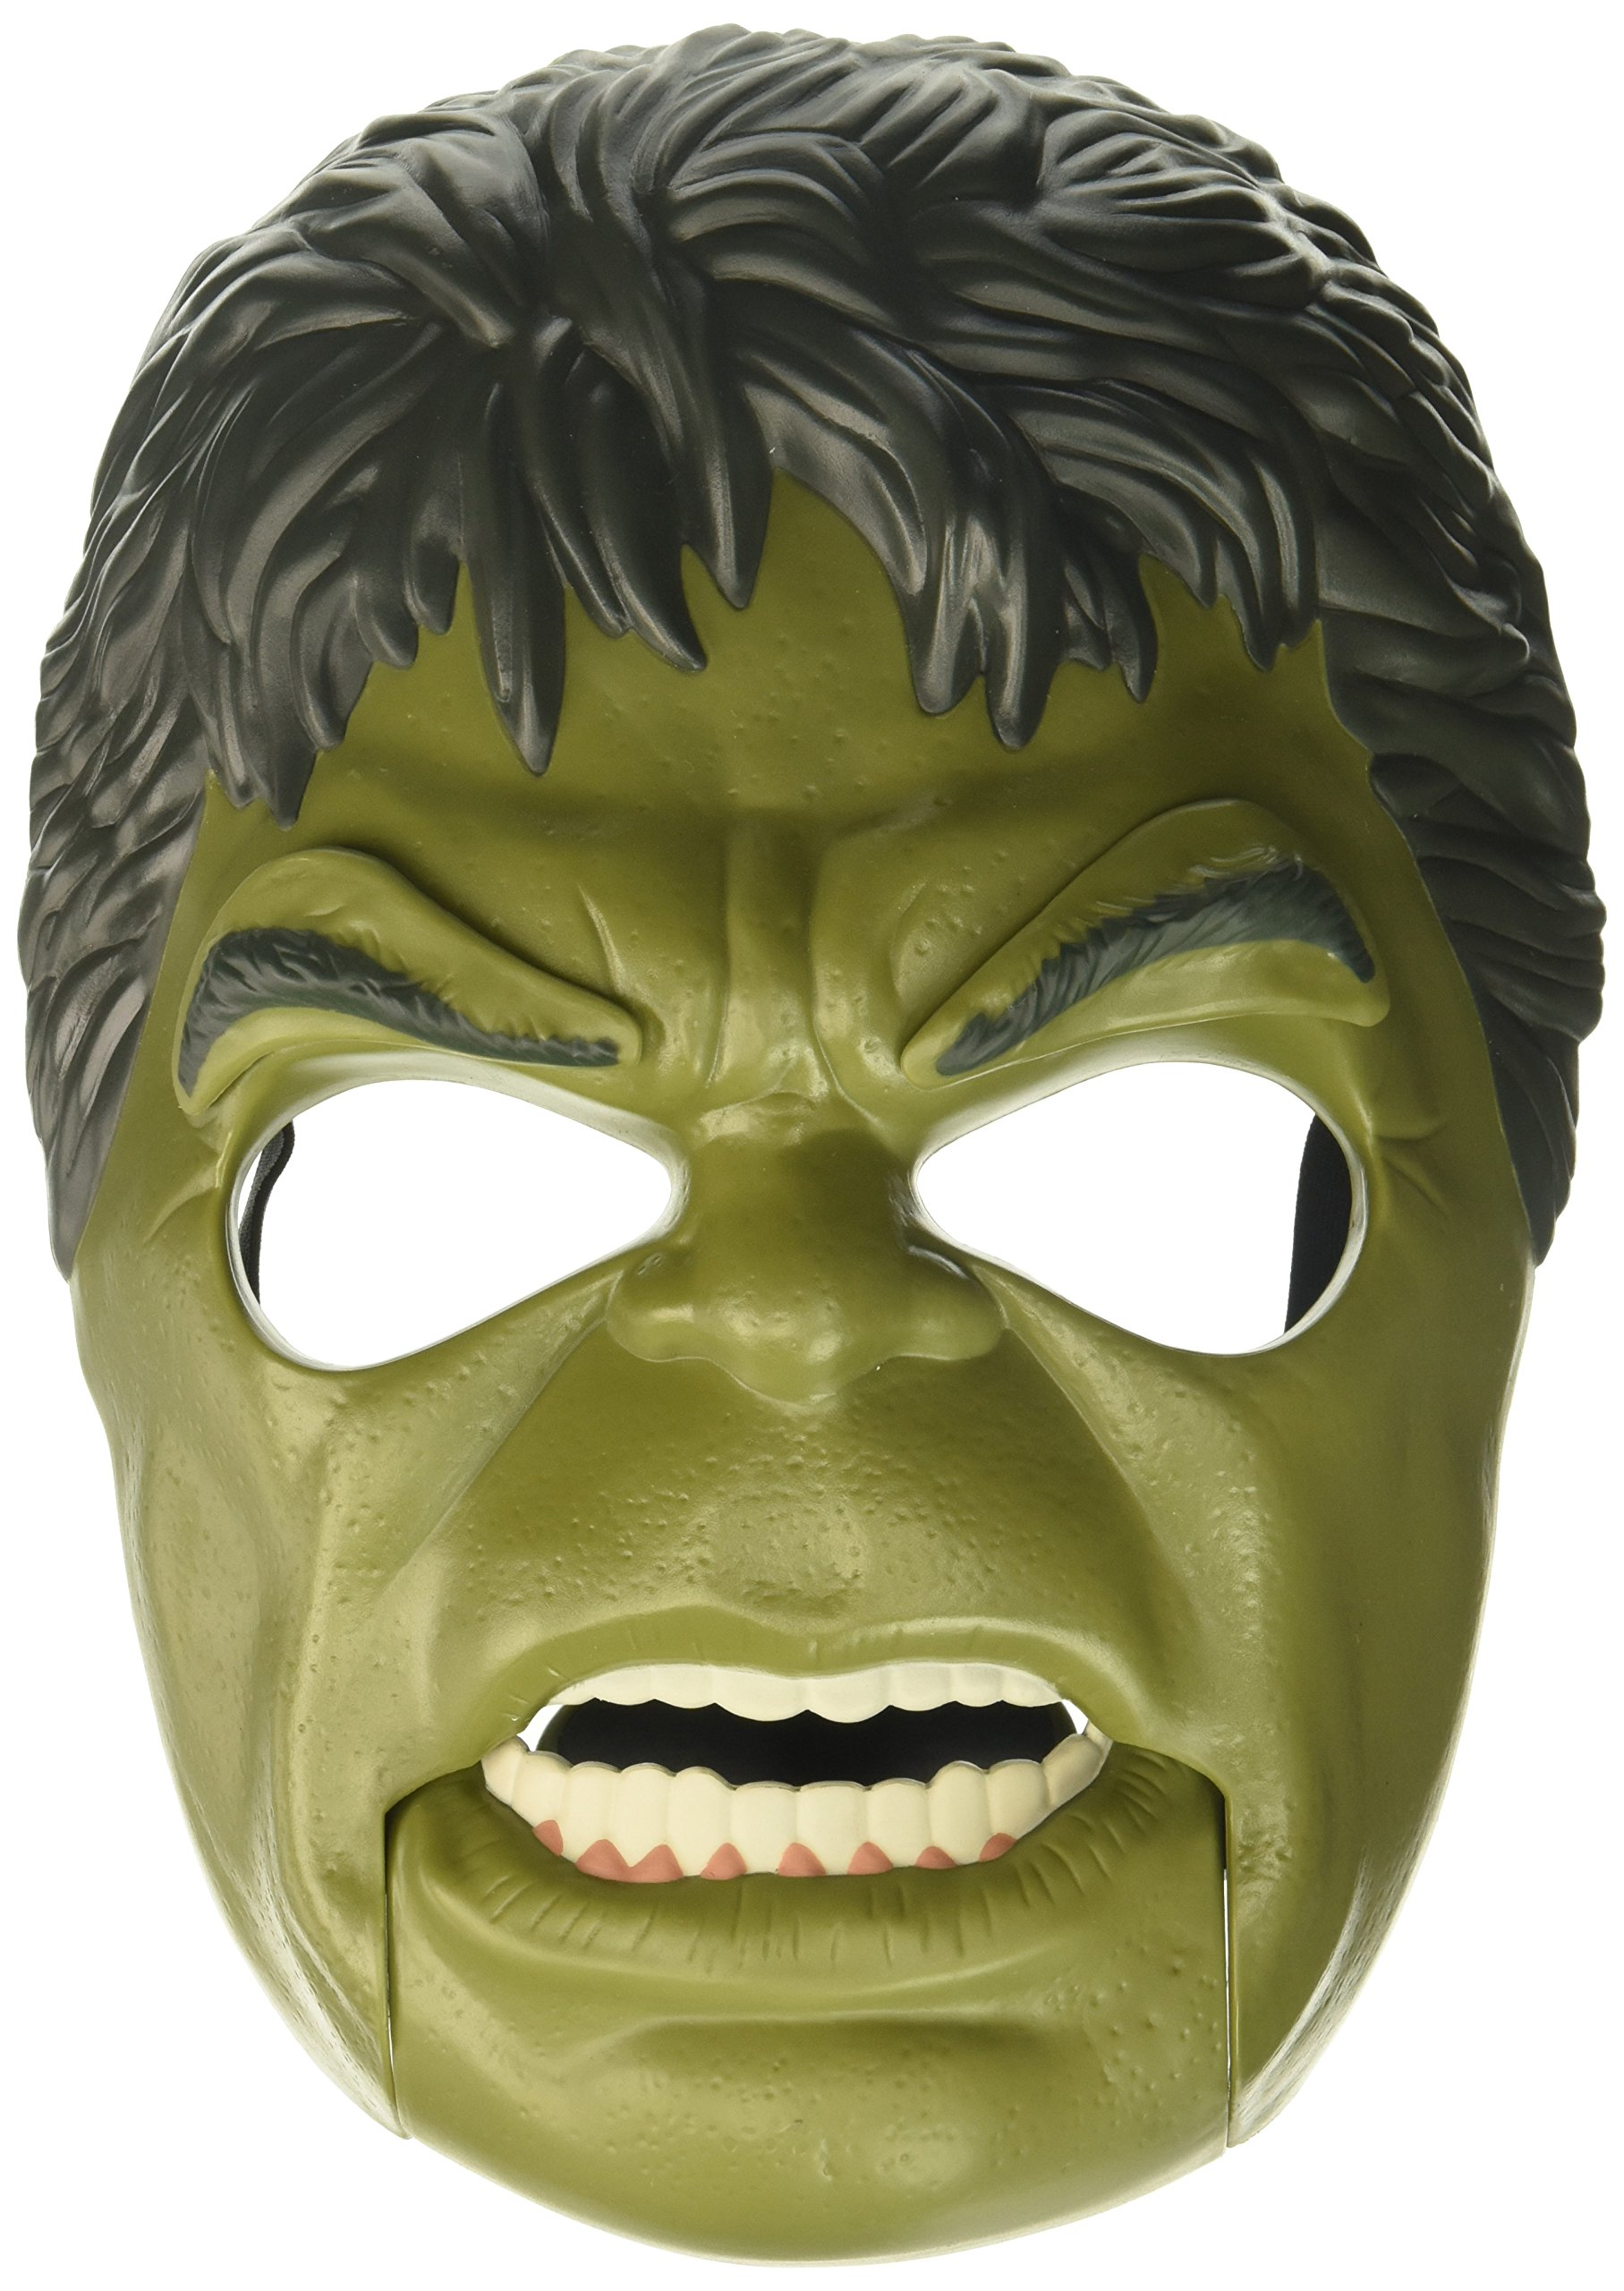 Marvel Toys Thor Ragnarok Hulk Out Mask with Adjustable Strap, Plus Moving Mouth and Eyebrows - Imagine Unleashing the Fury of the Incredible Hulk - Great Halloween Mask Too by Avengers